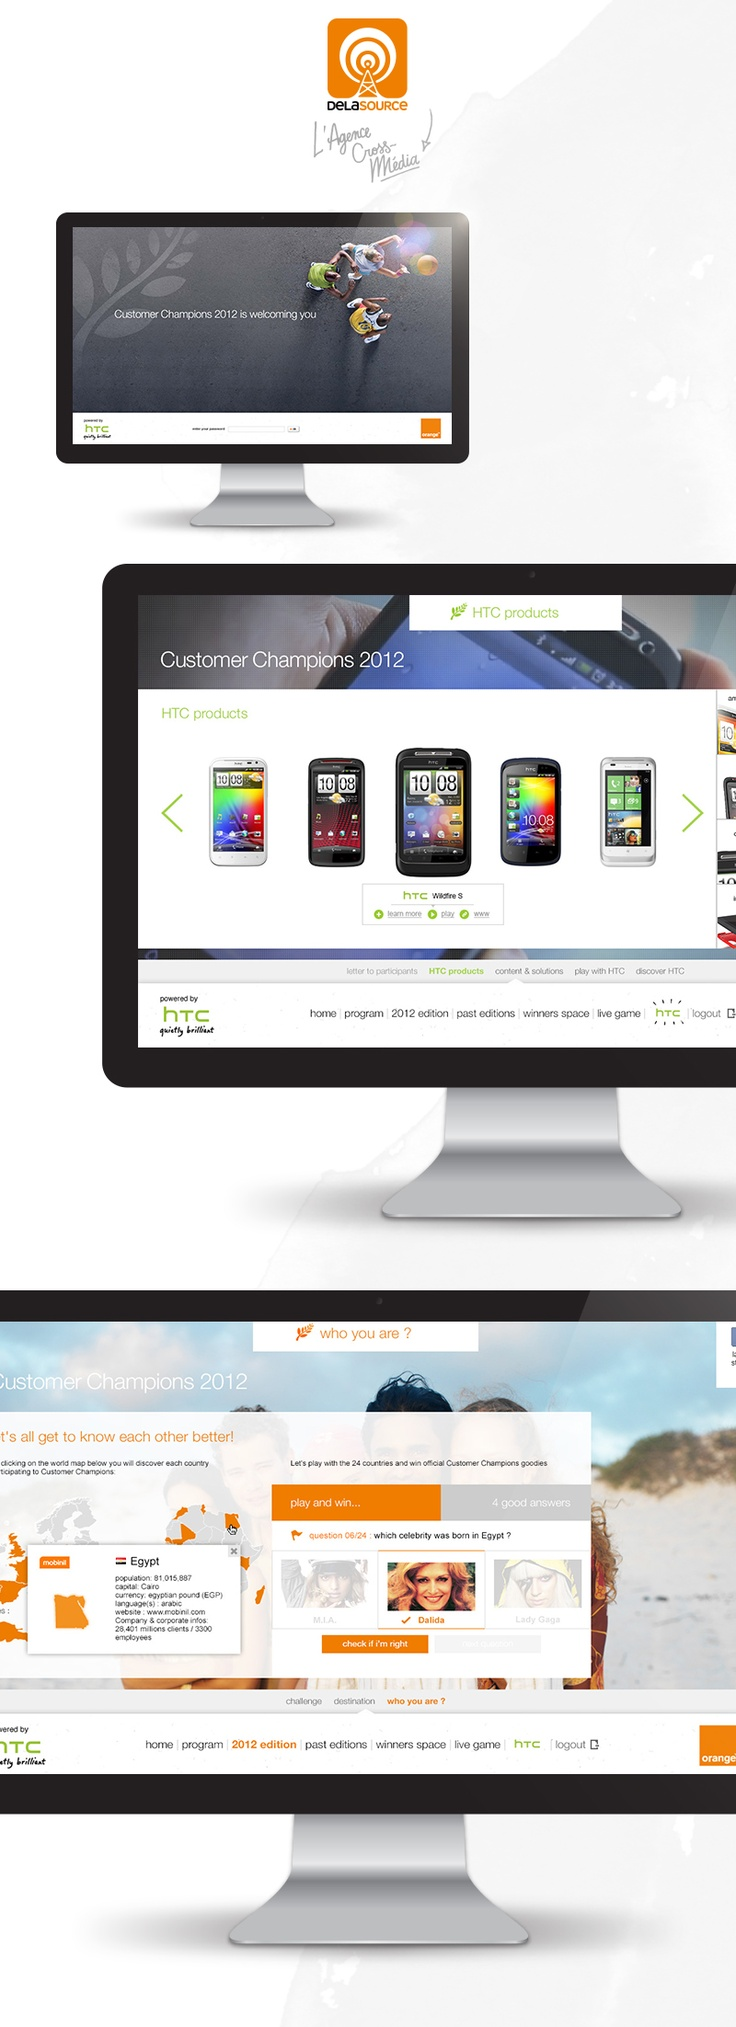 Customer Champions website: designed and powered by © Delasource (Orange group)